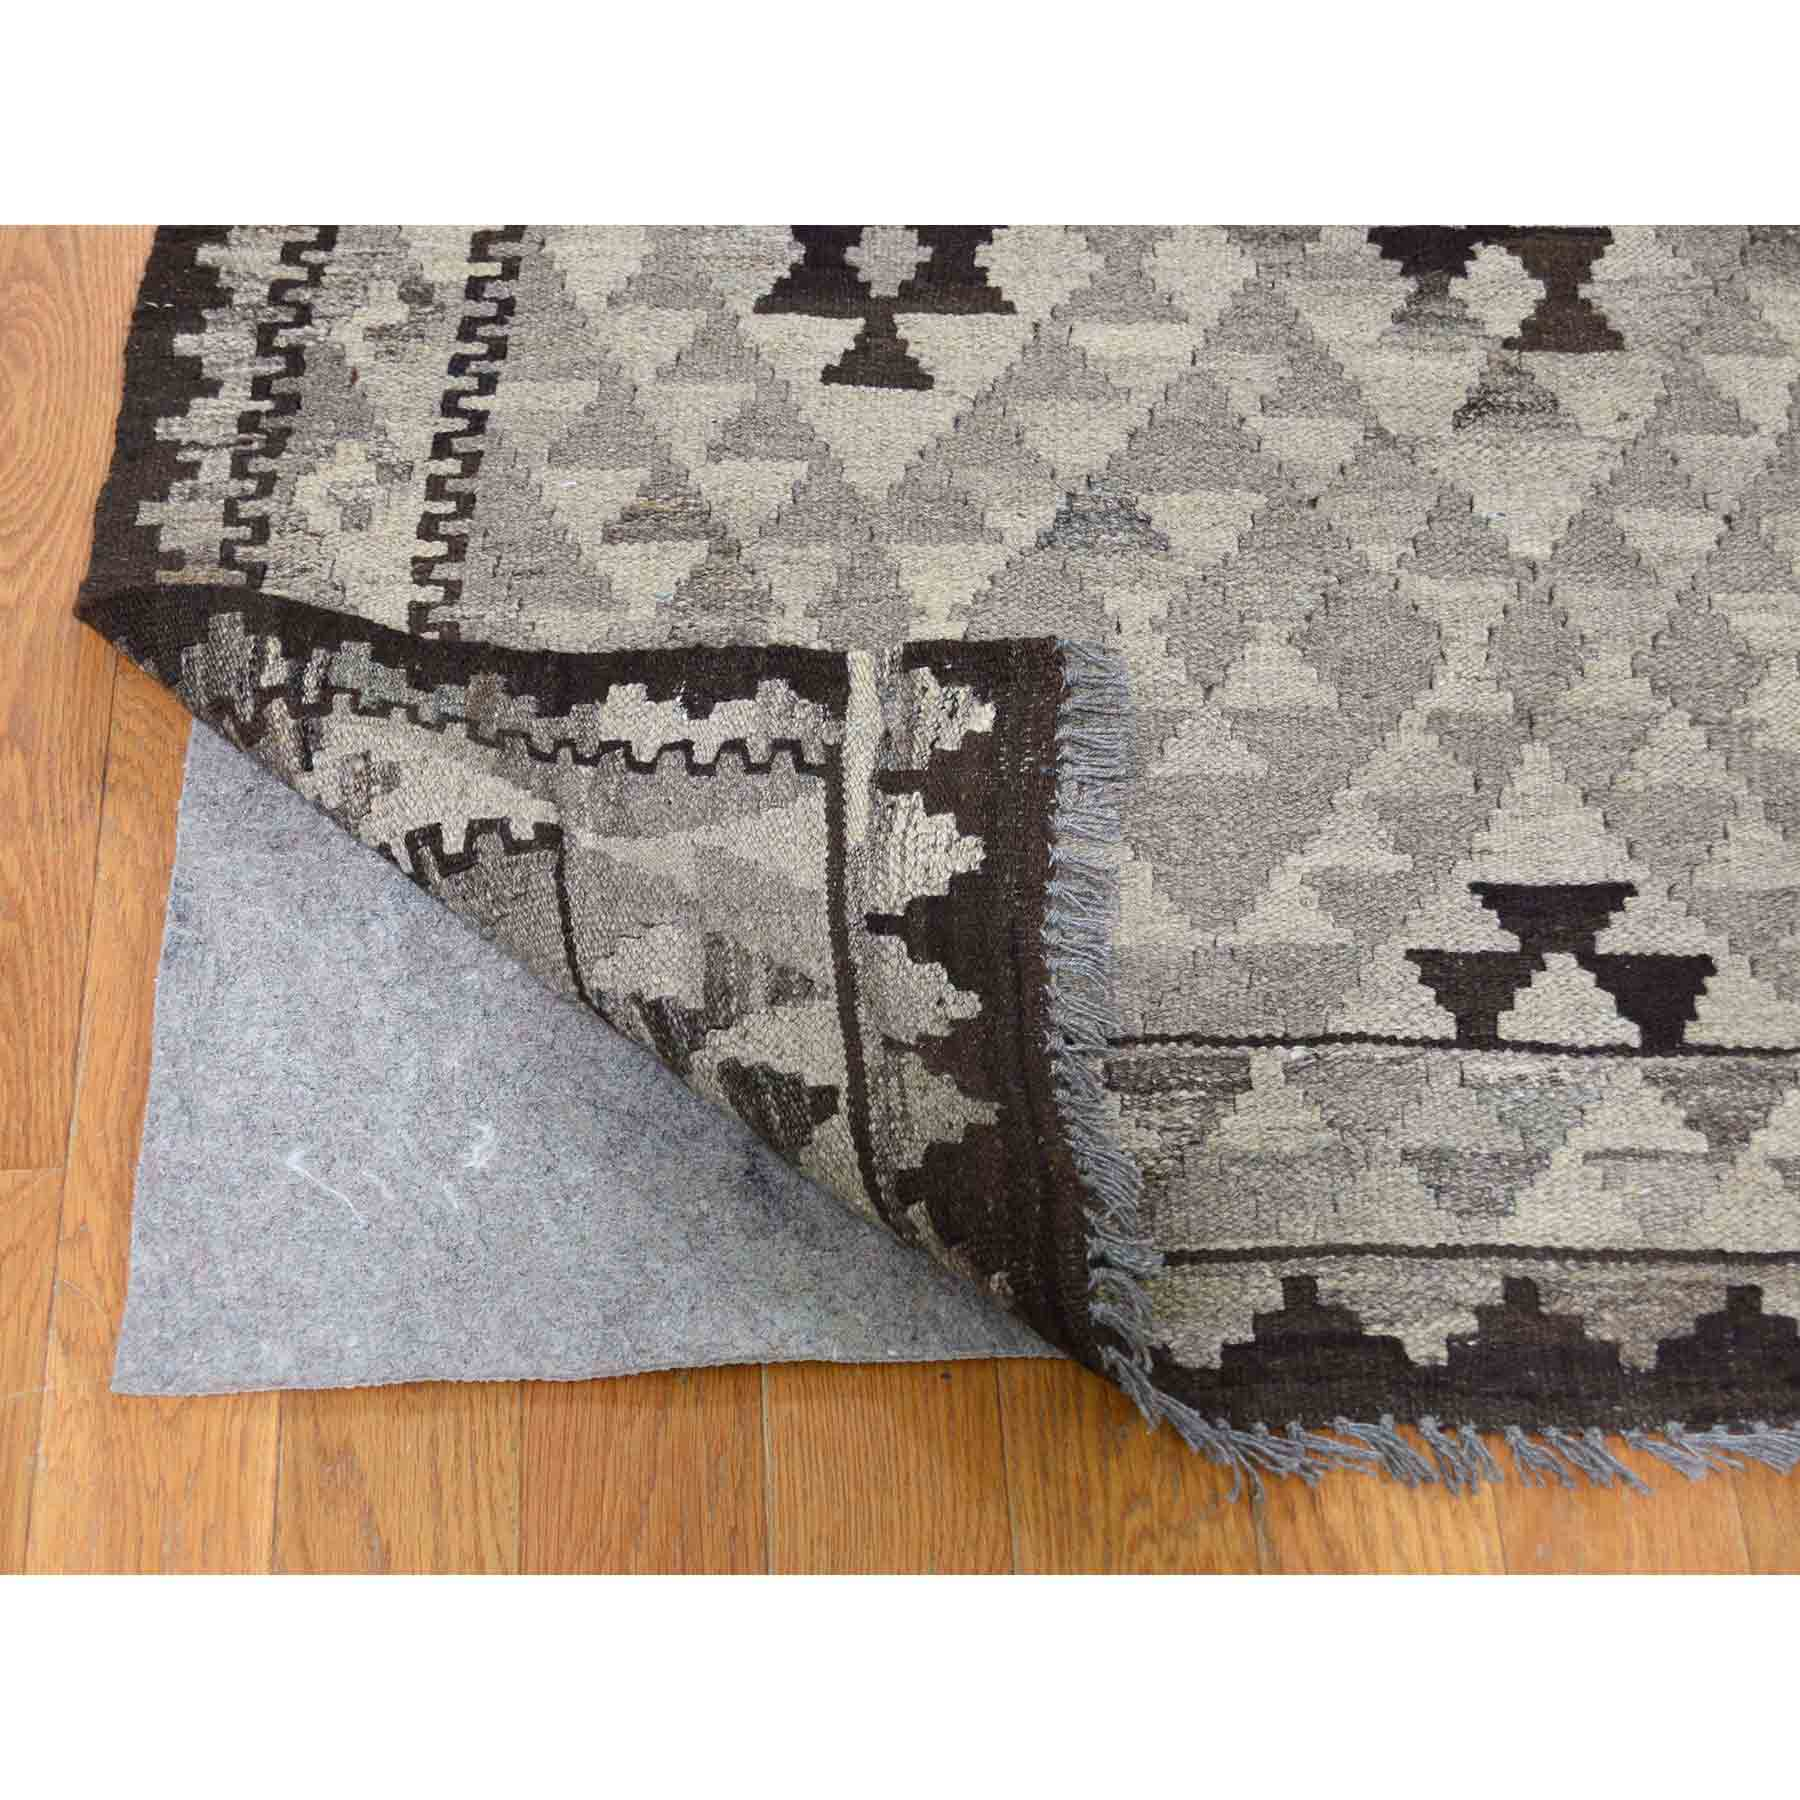 Flat-Weave-Hand-Woven-Rug-233735